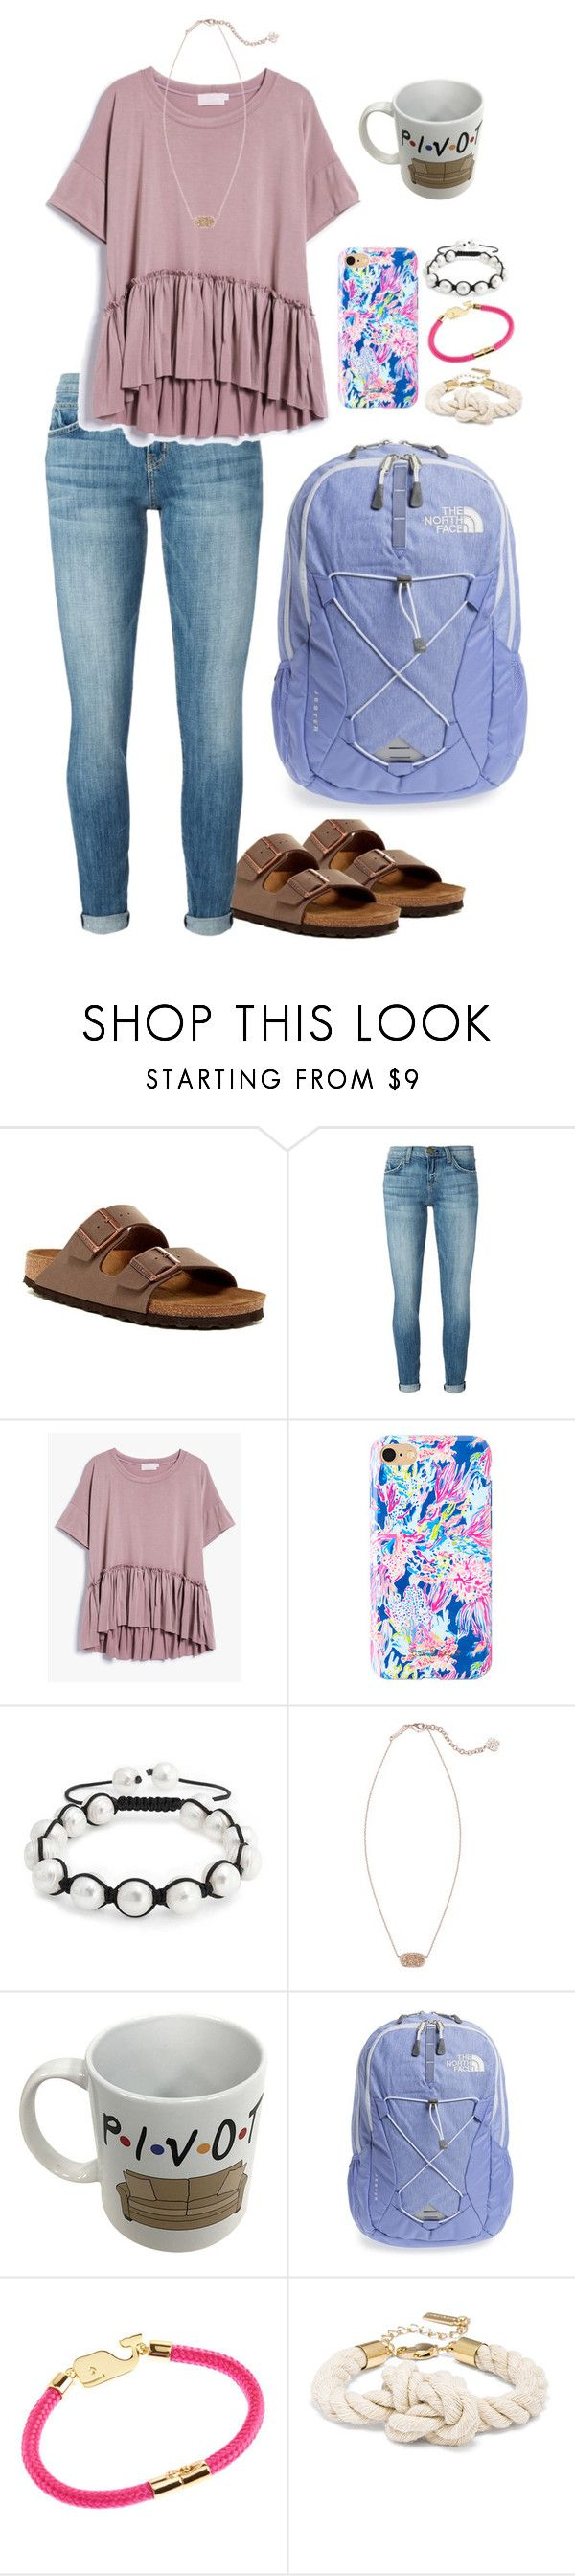 """Supe-tember"" by mirandamf on Polyvore featuring Birkenstock, Current/Elliott, Lilly Pulitzer, Bling Jewelry, Kendra Scott, The North Face and Vineyard Vines"